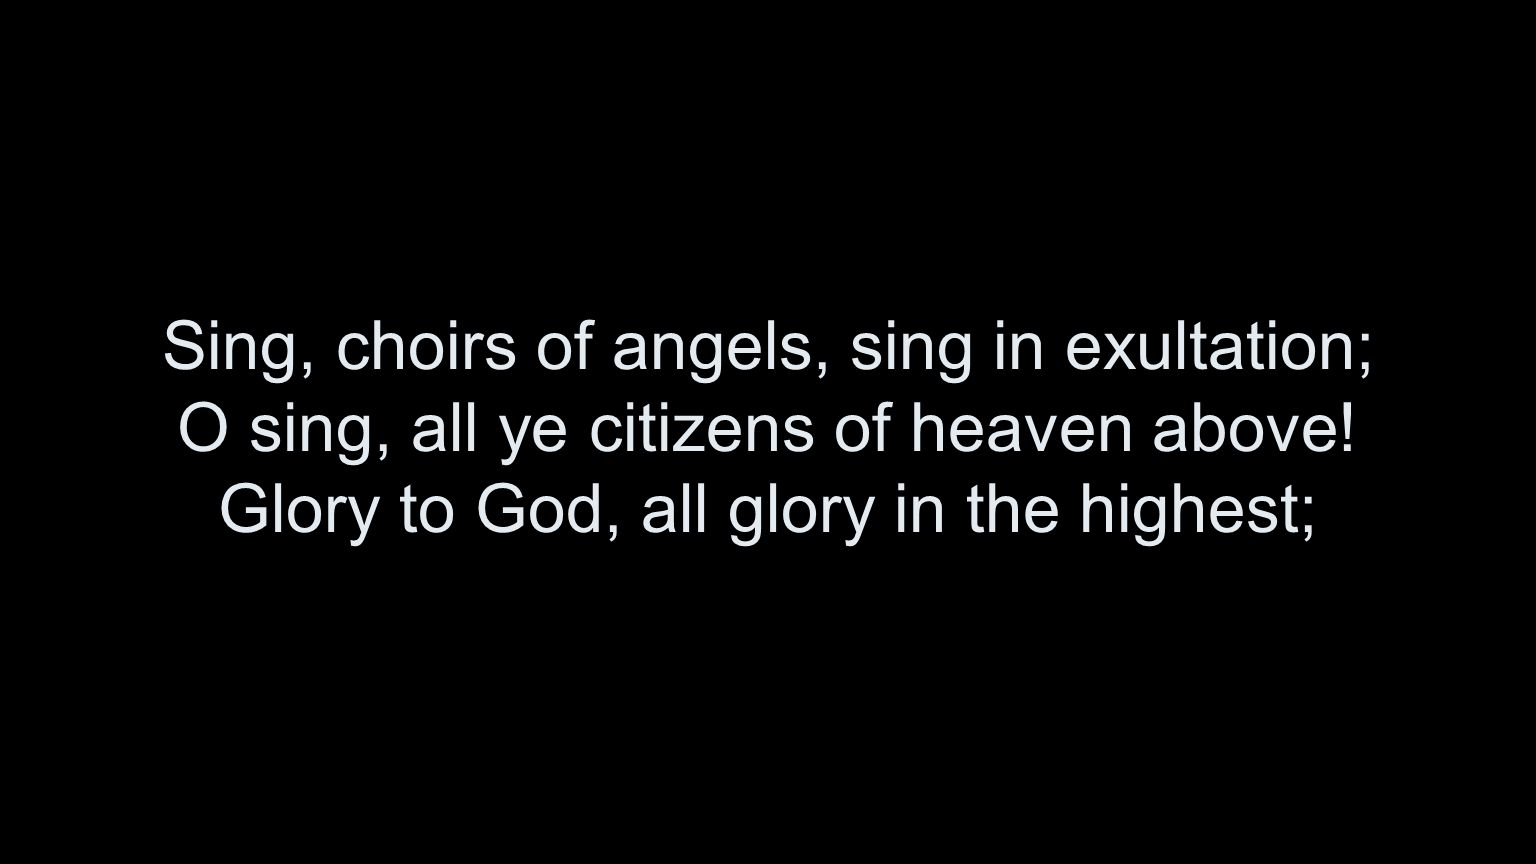 Sing, choirs of angels, sing in exultation; O sing, all ye citizens of heaven above.